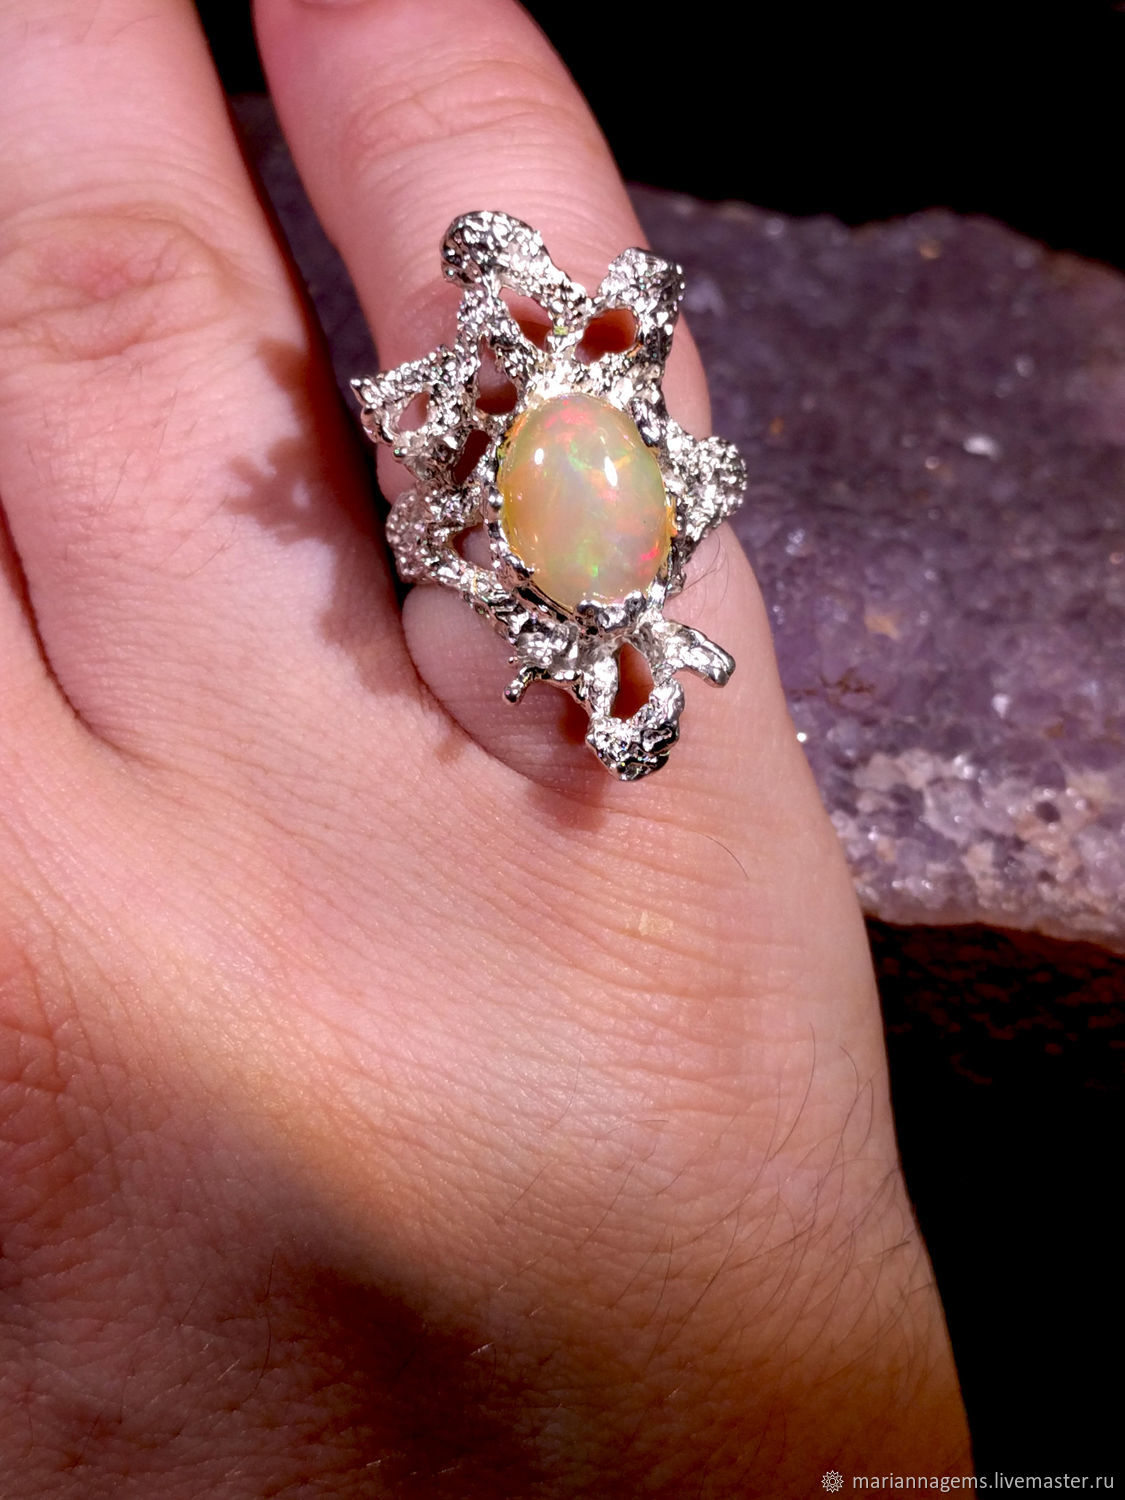 Copy of Copy of opal ring – shop online on Livemaster with shipping ...